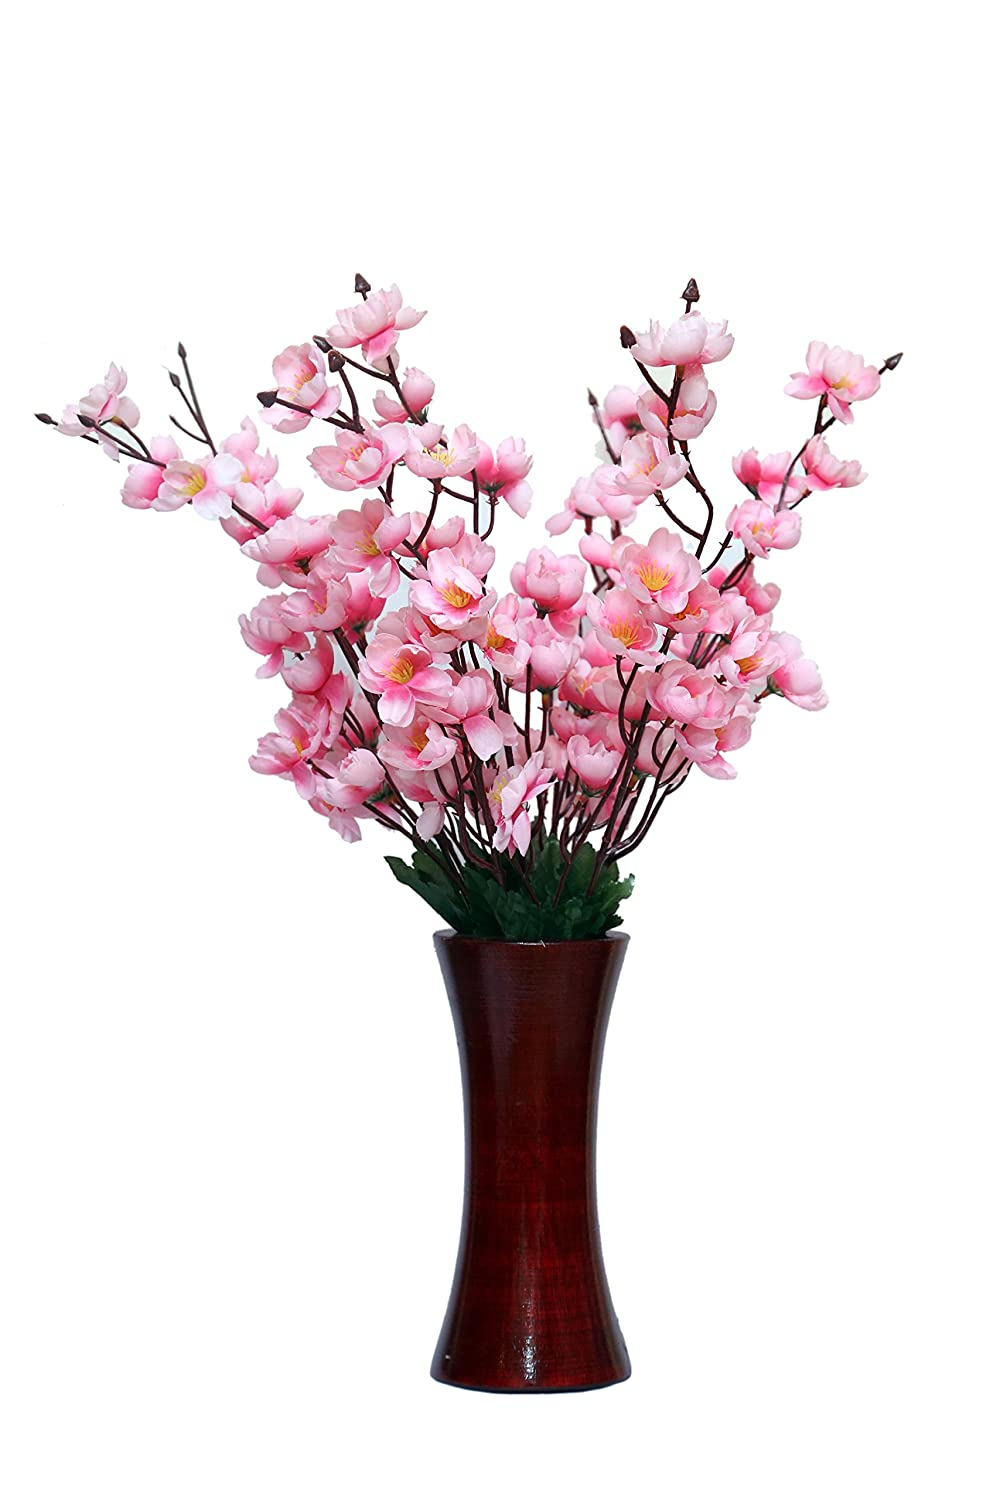 Buy a2z street pink orchids artificial flowers with wooden vase buy a2z street pink orchids artificial flowers with wooden vase online at low prices in india amazon reviewsmspy